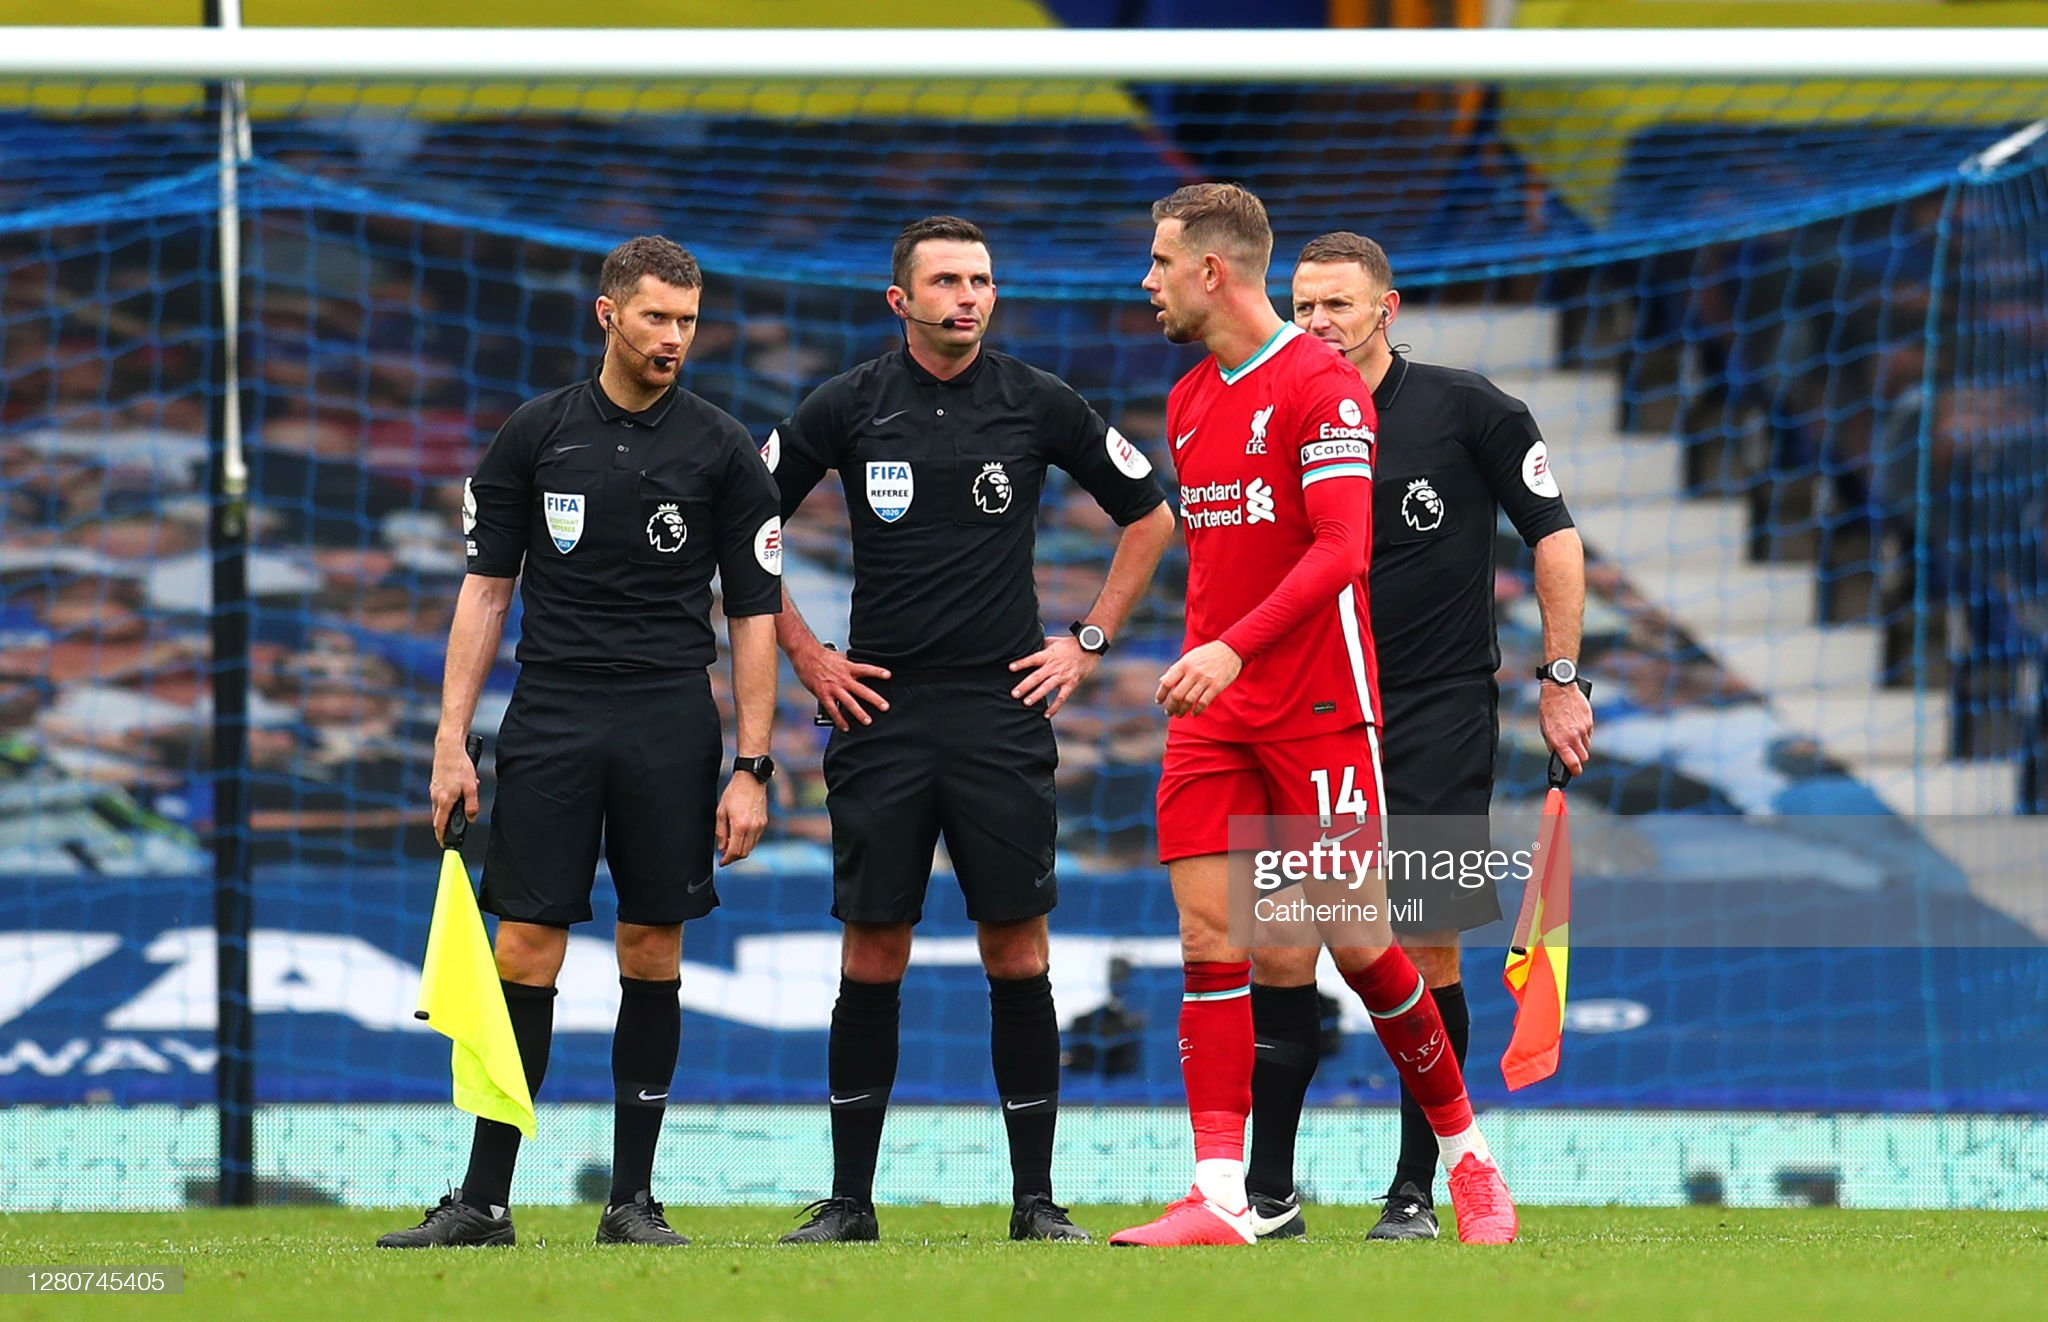 Merseyside derby draw ends in controversy